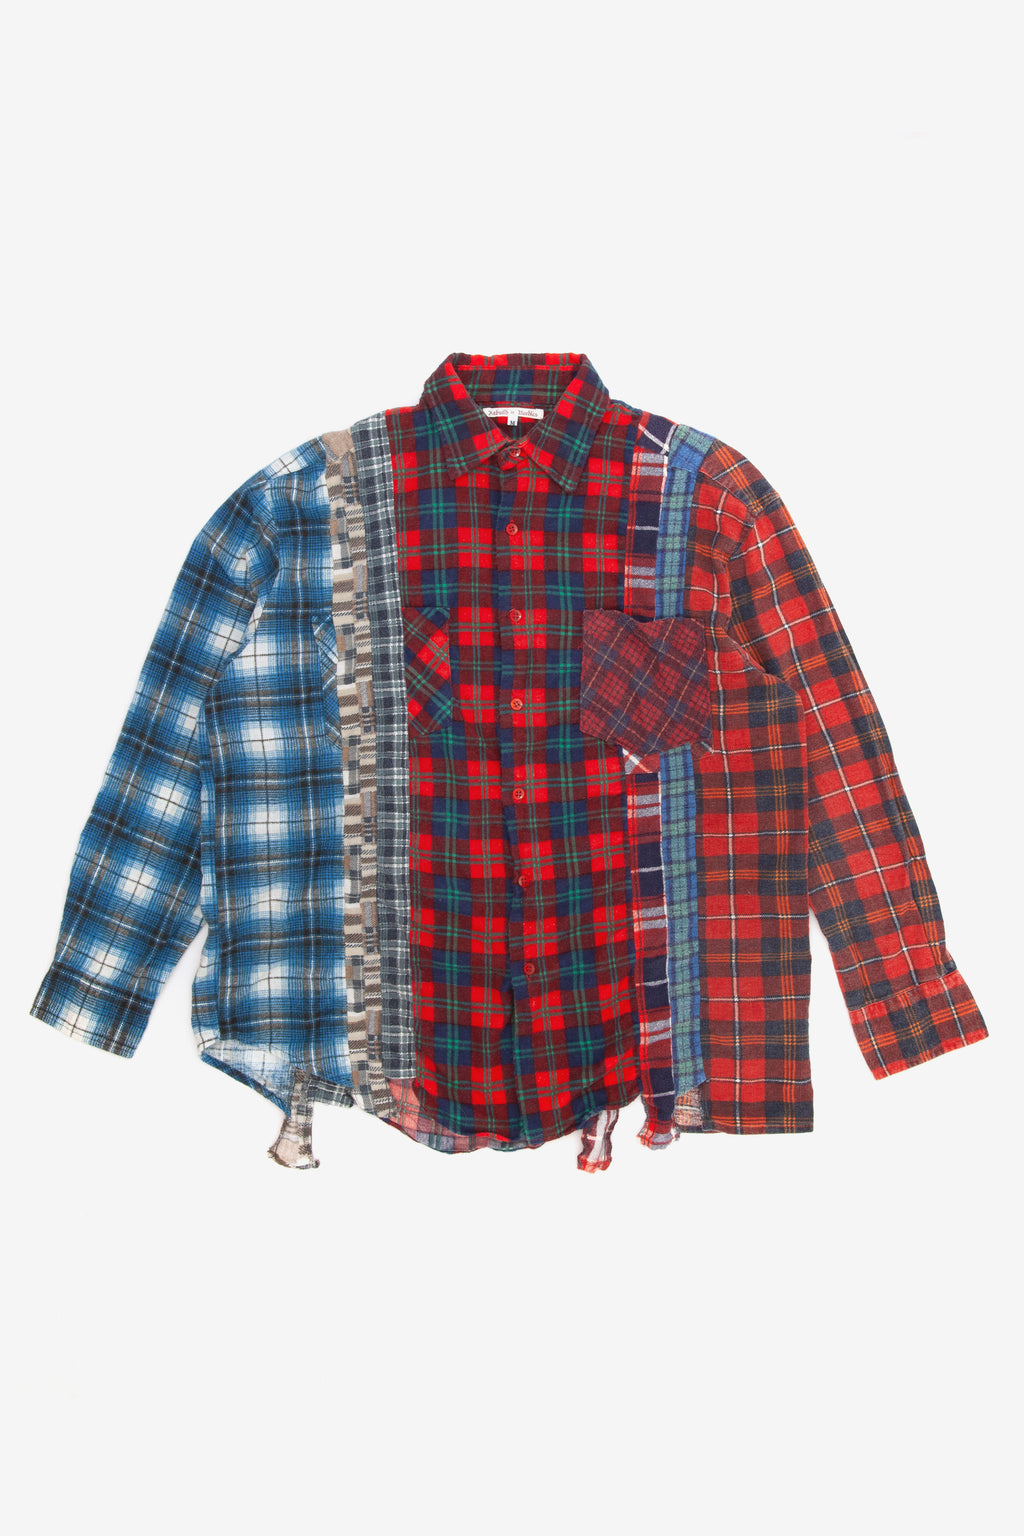 Needles rebuild 7 cuts flannel shirt - Medium 1